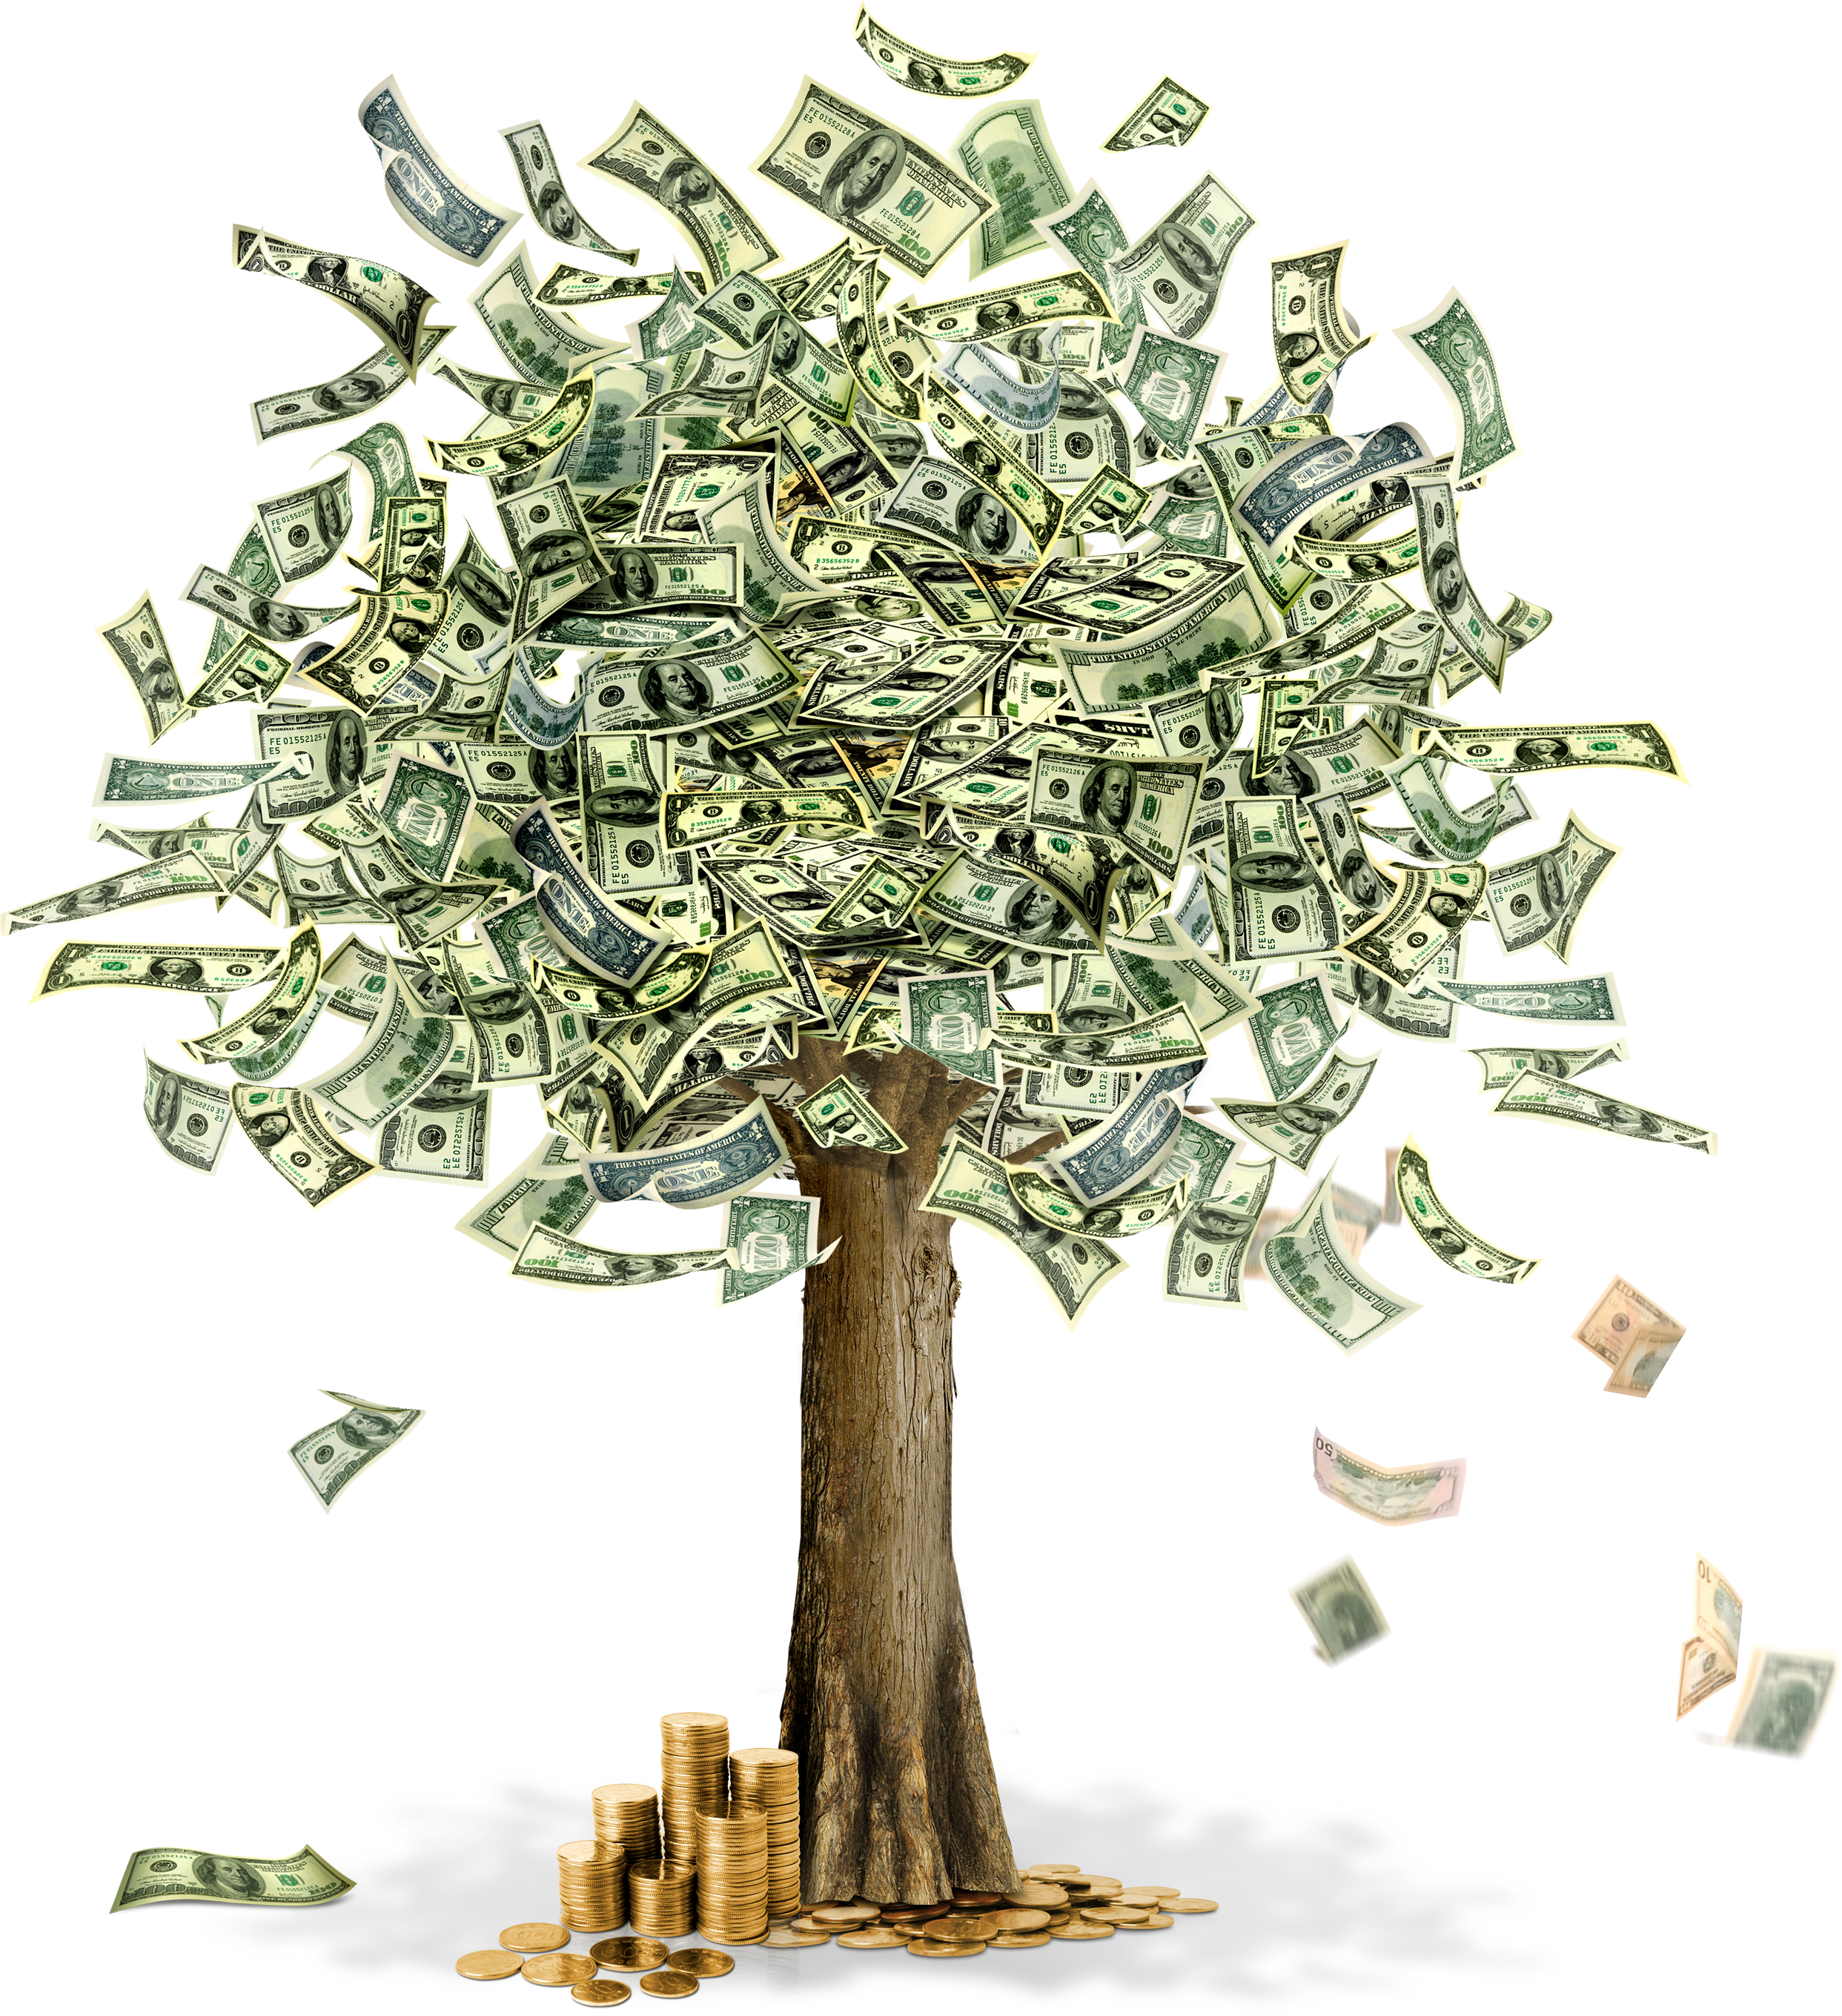 Drawing at getdrawings com. Money tree png